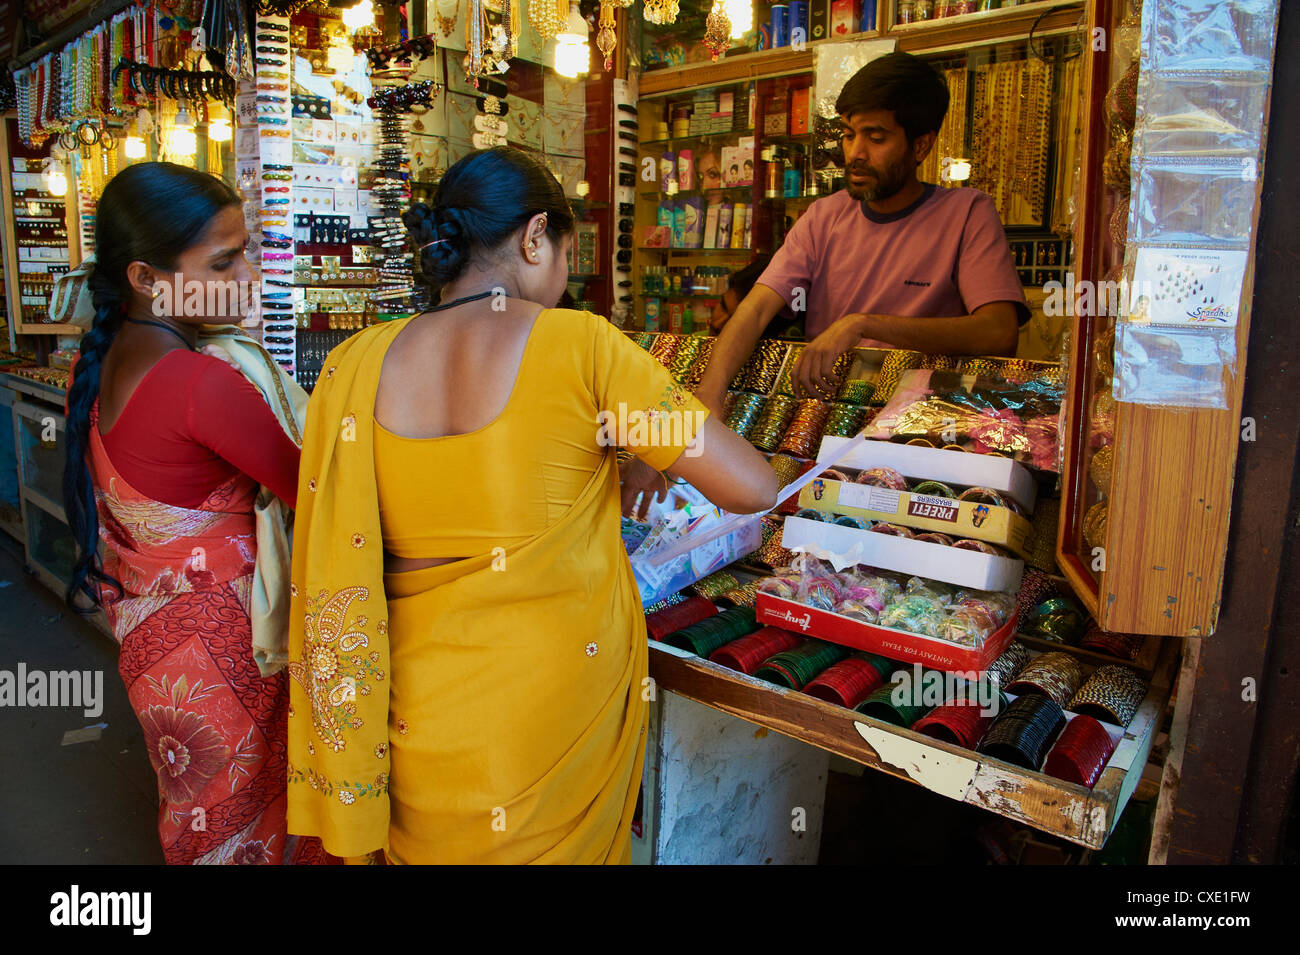 Bracelets and bangles for sale, Devaraja market, Mysore, Karnataka, India, Asia - Stock Image